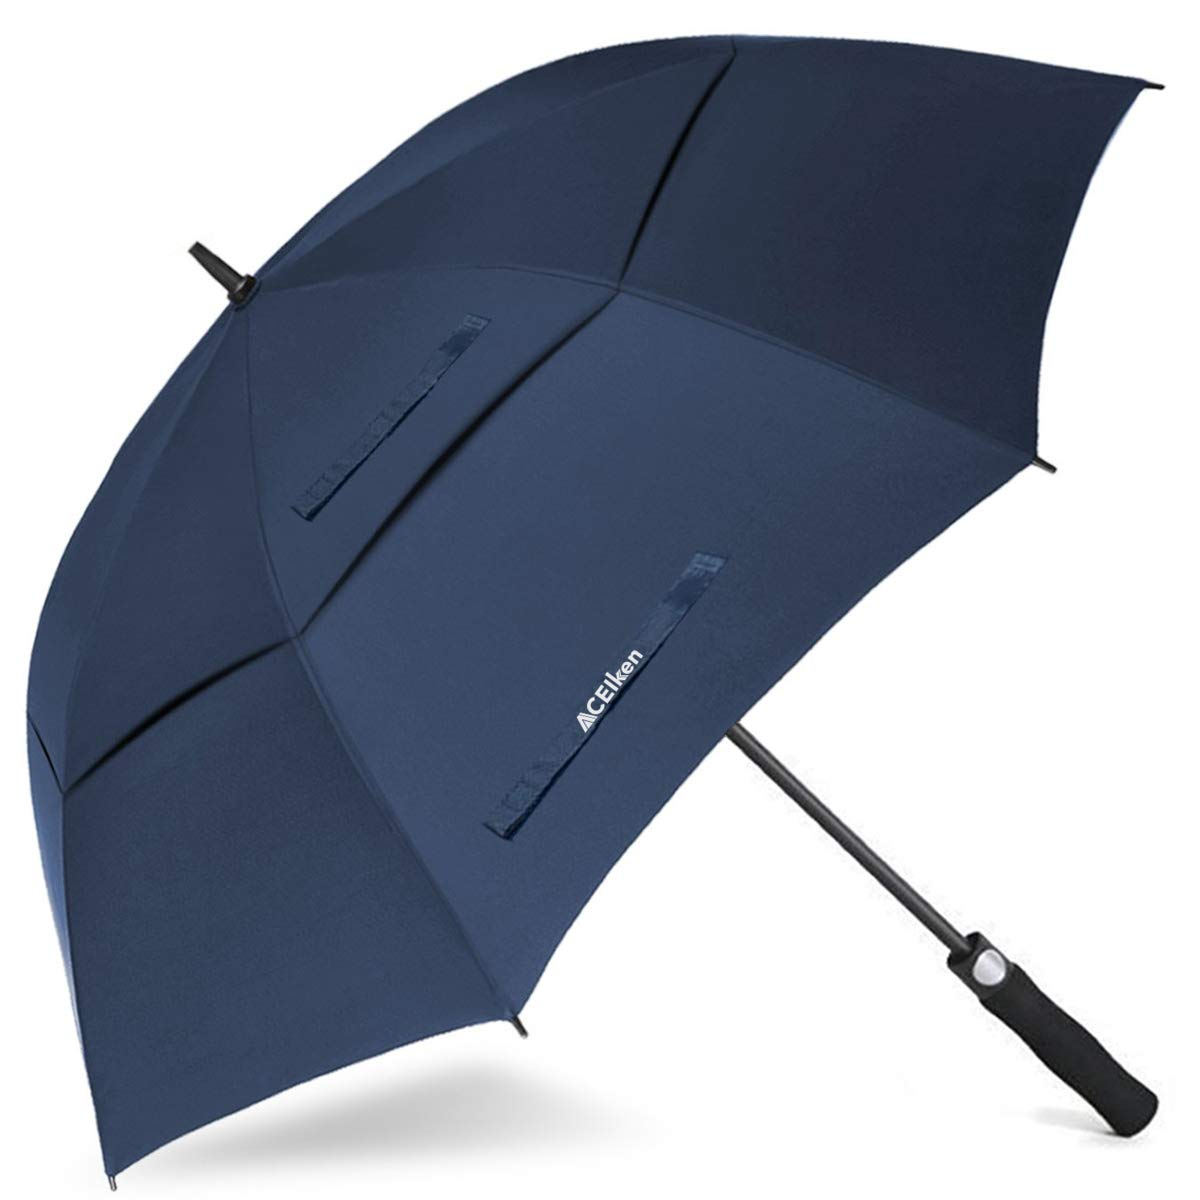 ACEIken Golf Umbrella Large 62 Inch Automatic Open Golf Umbrella Extra Large Oversize Double Canopy Vented Umbrella Windproof Waterproof for Men and Women by ACEIken